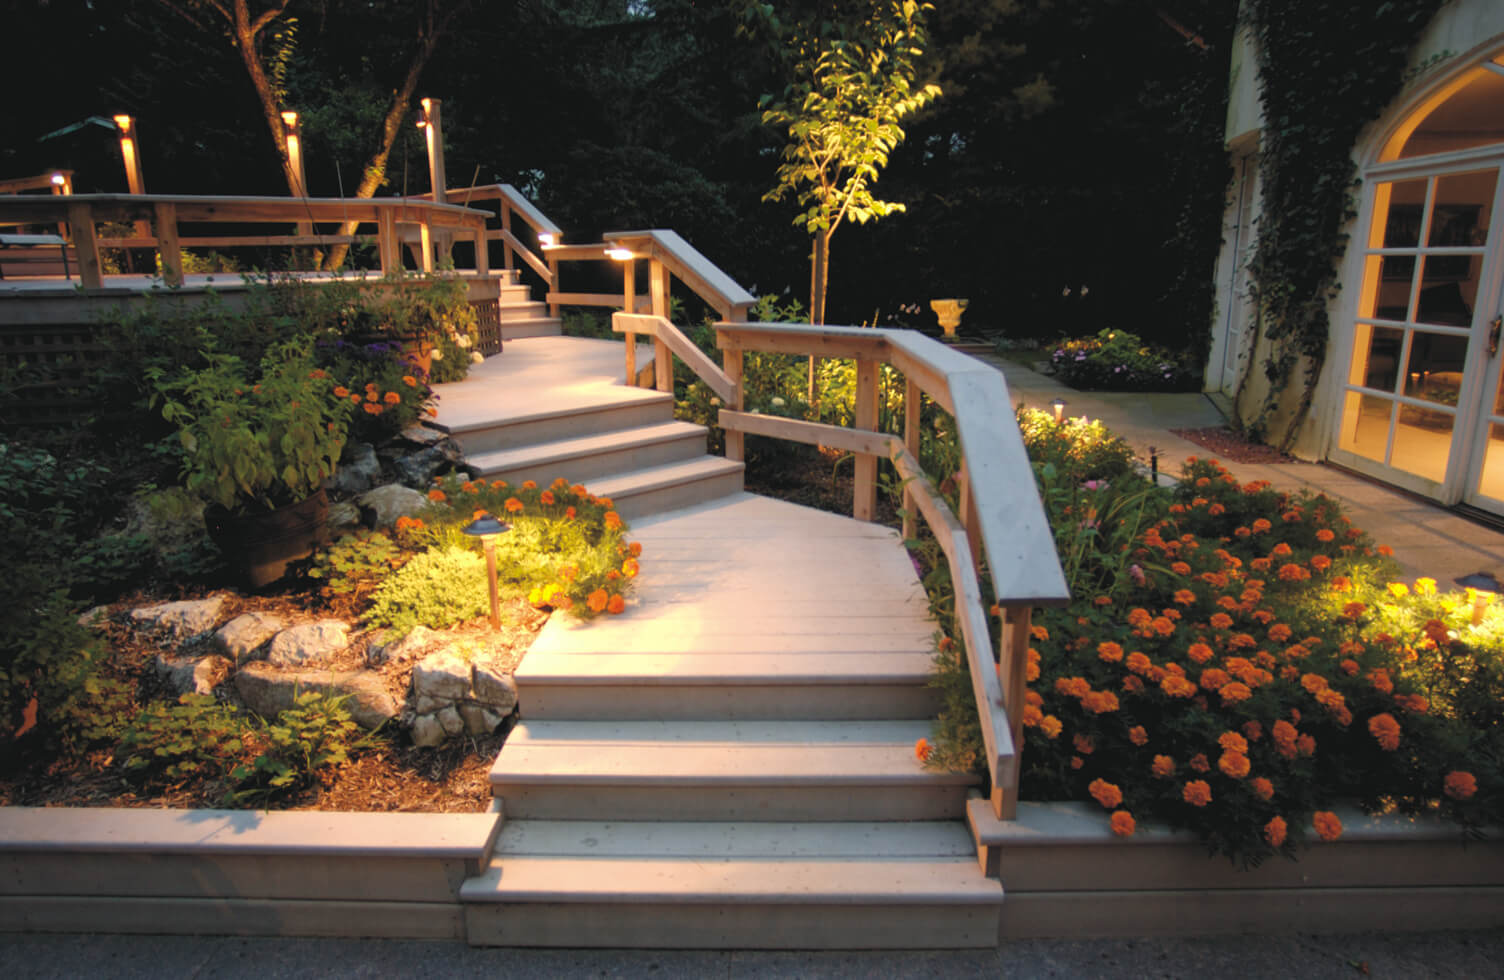 Exterior home pathway with lighting